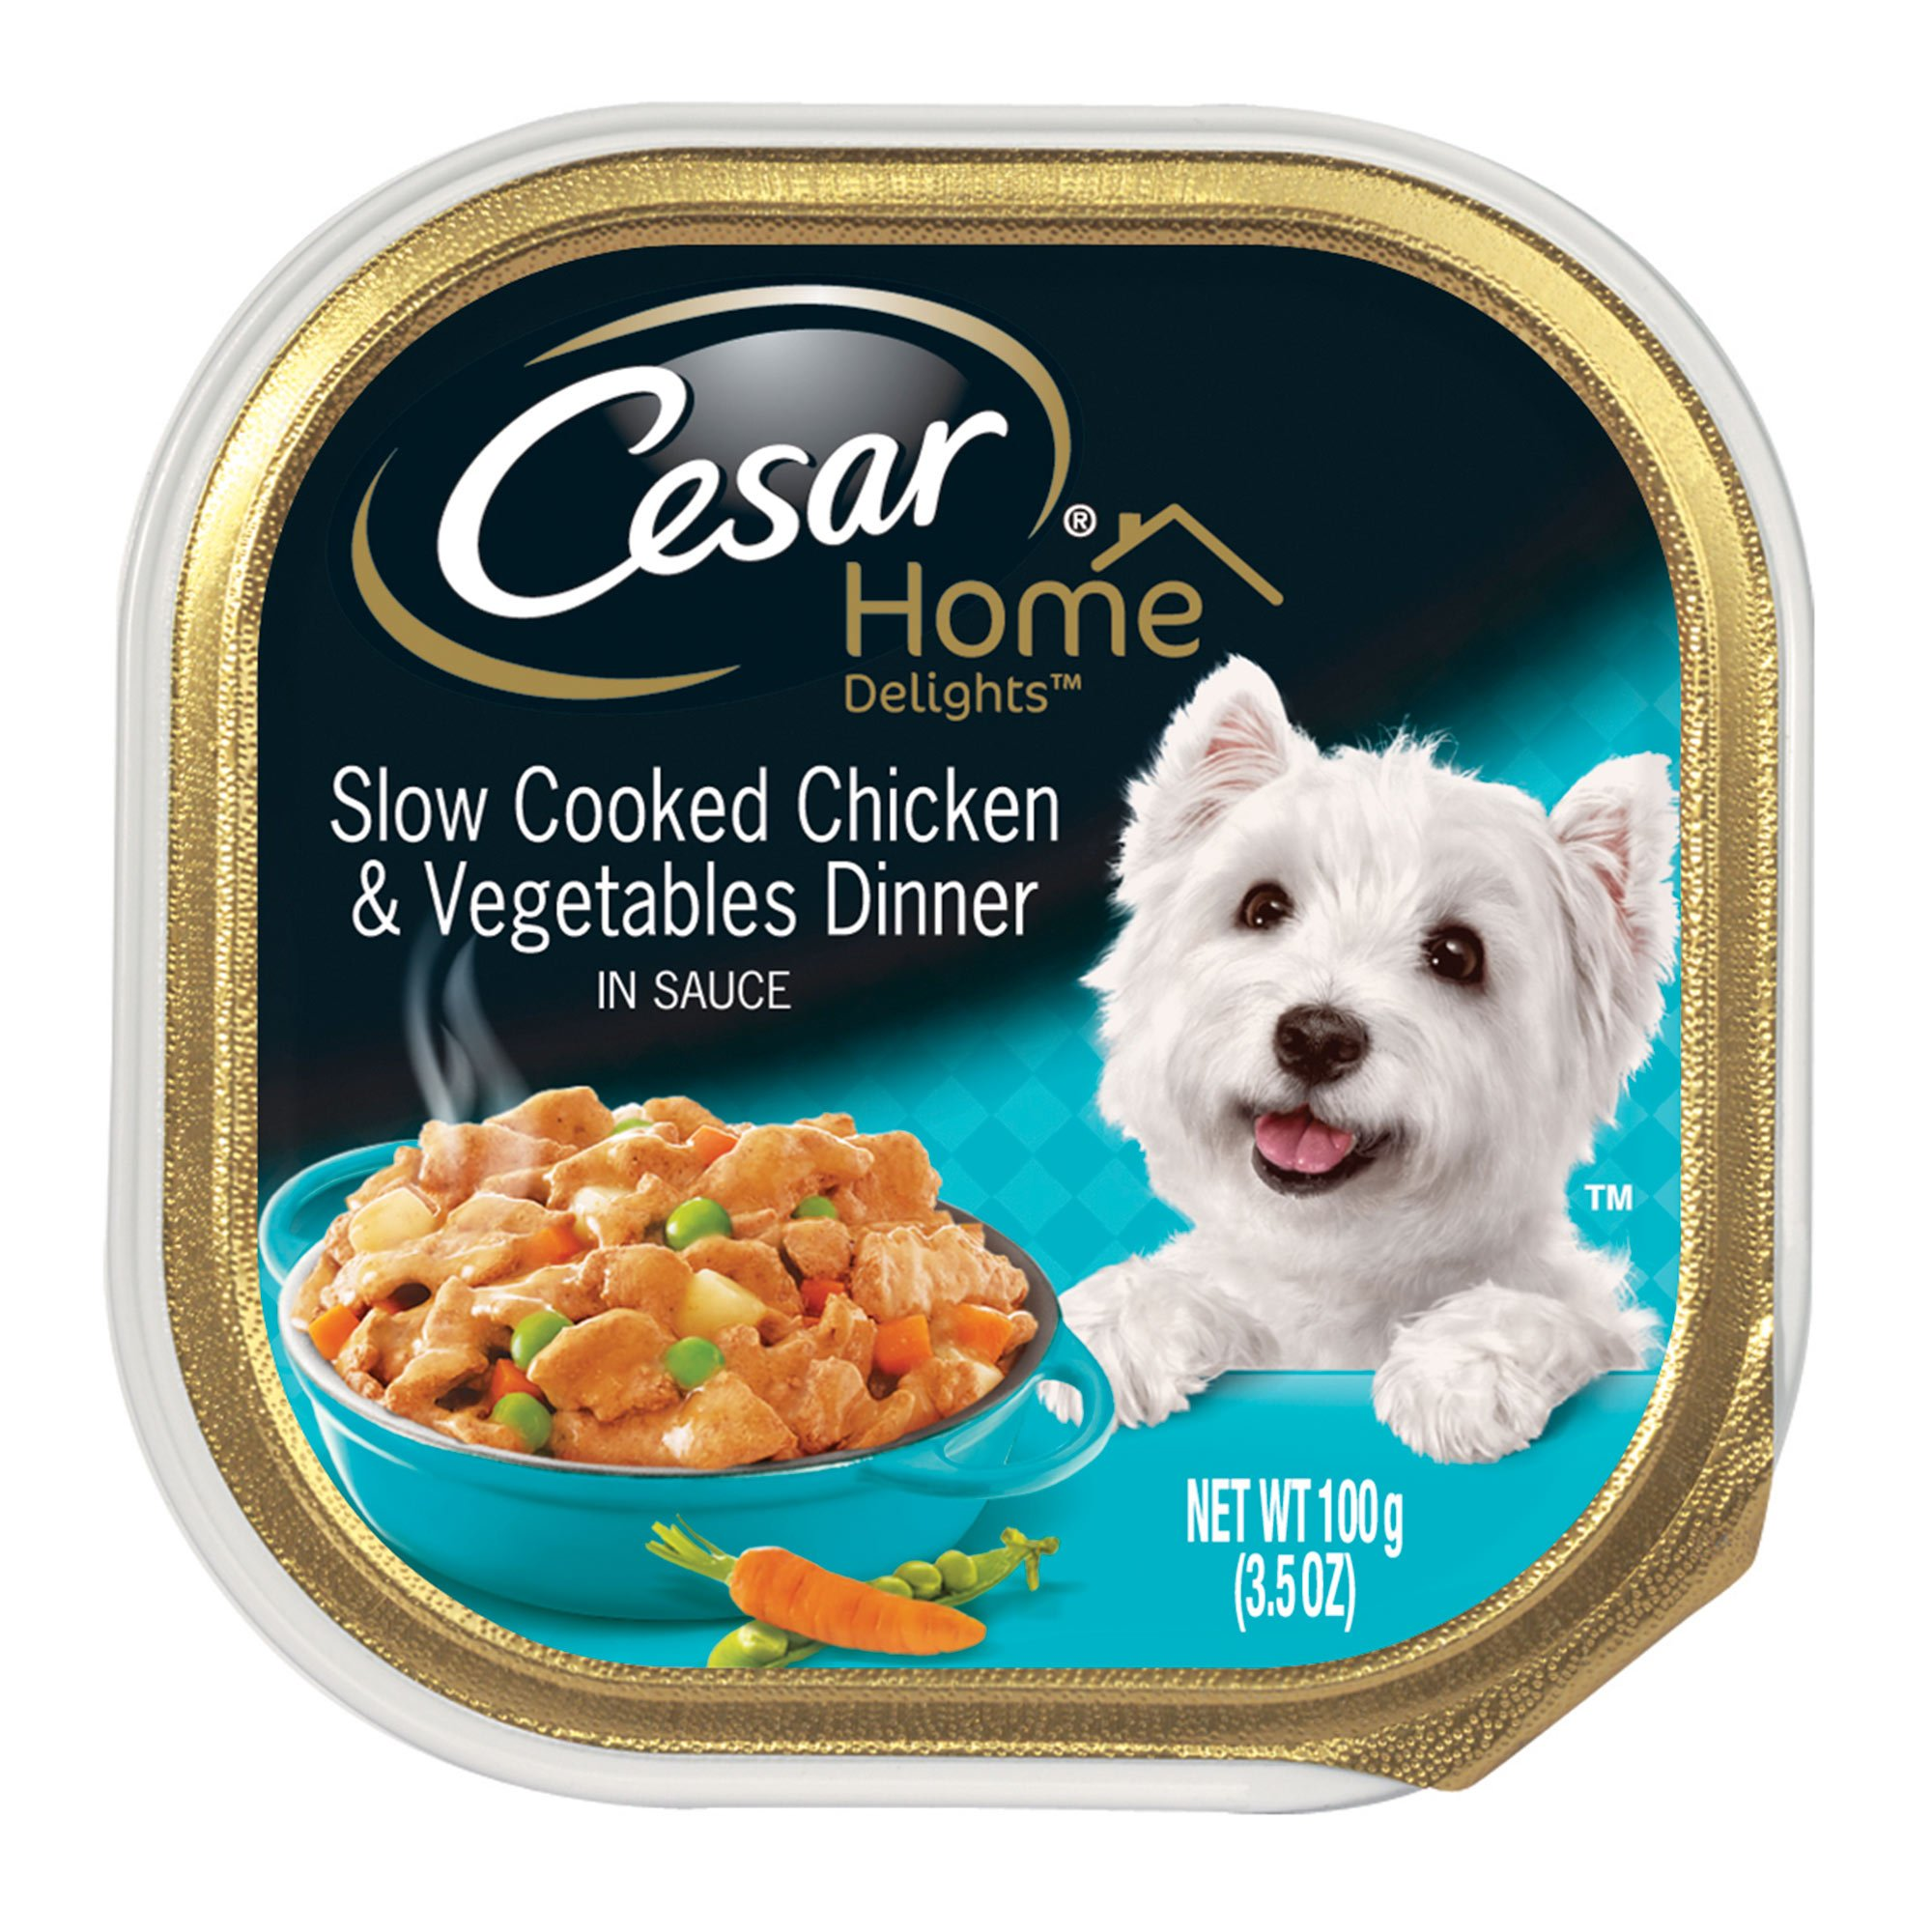 Caesars Dog Food Dry